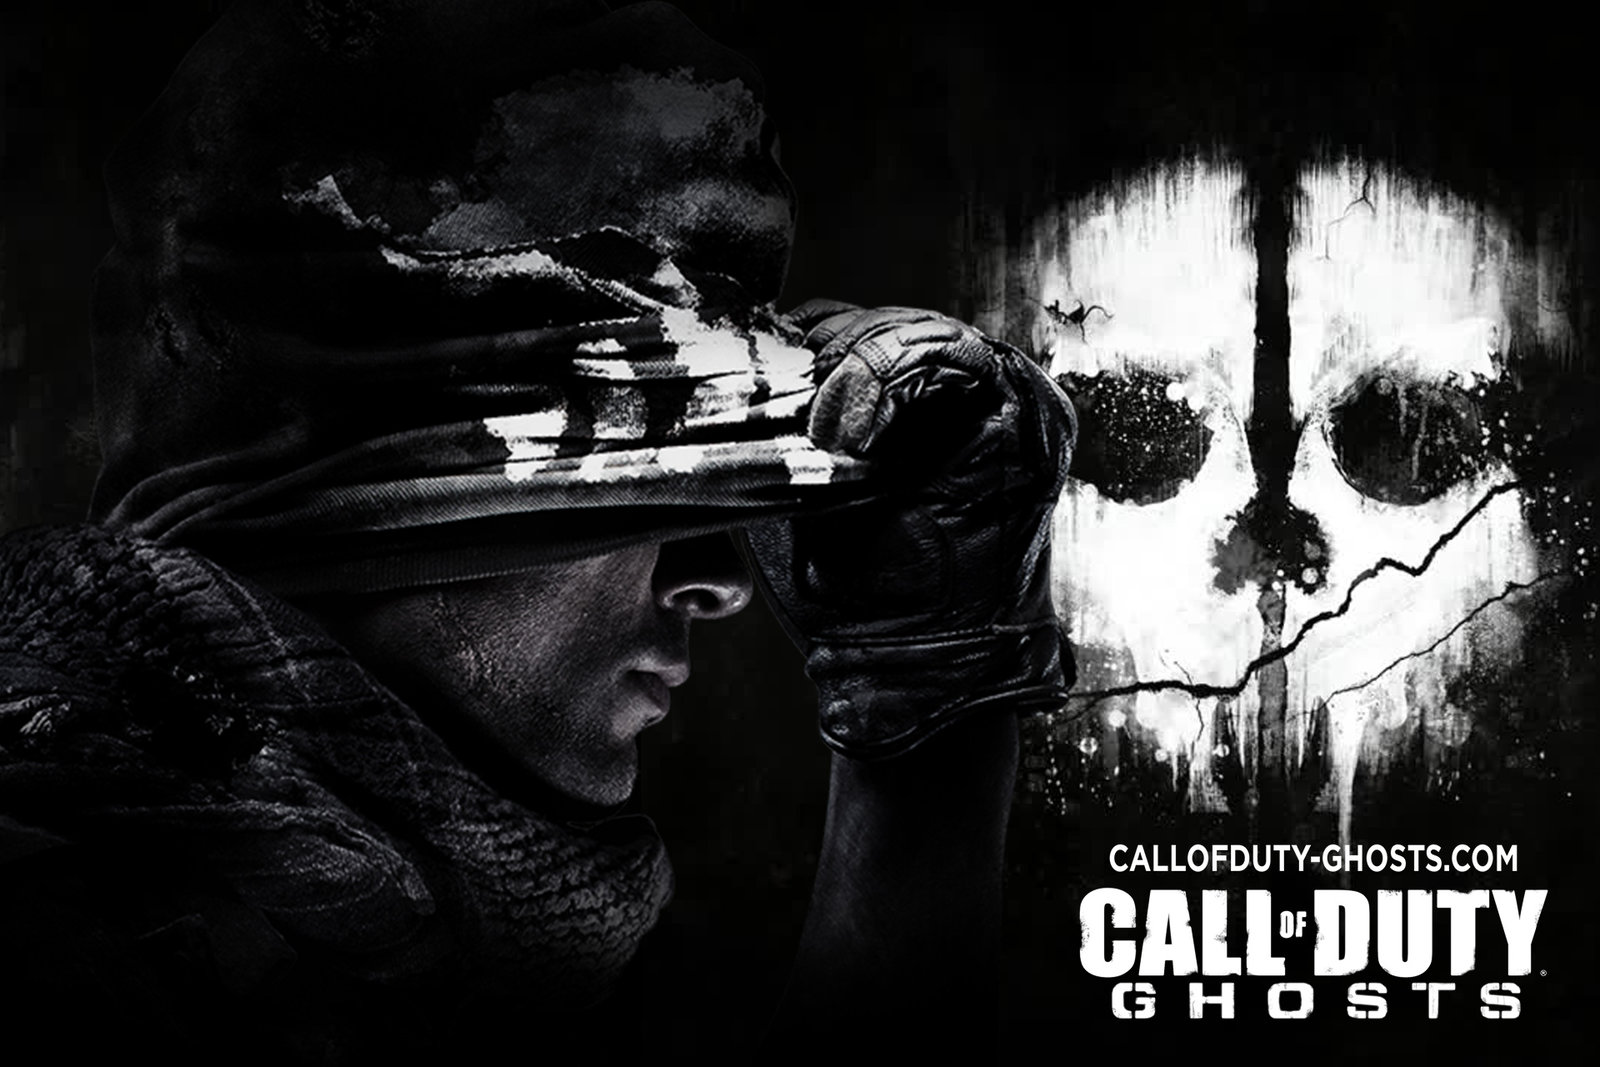 Call Of Duty Hd Live Wallpaper Download Call Of Duty Hd Live 1600x1067